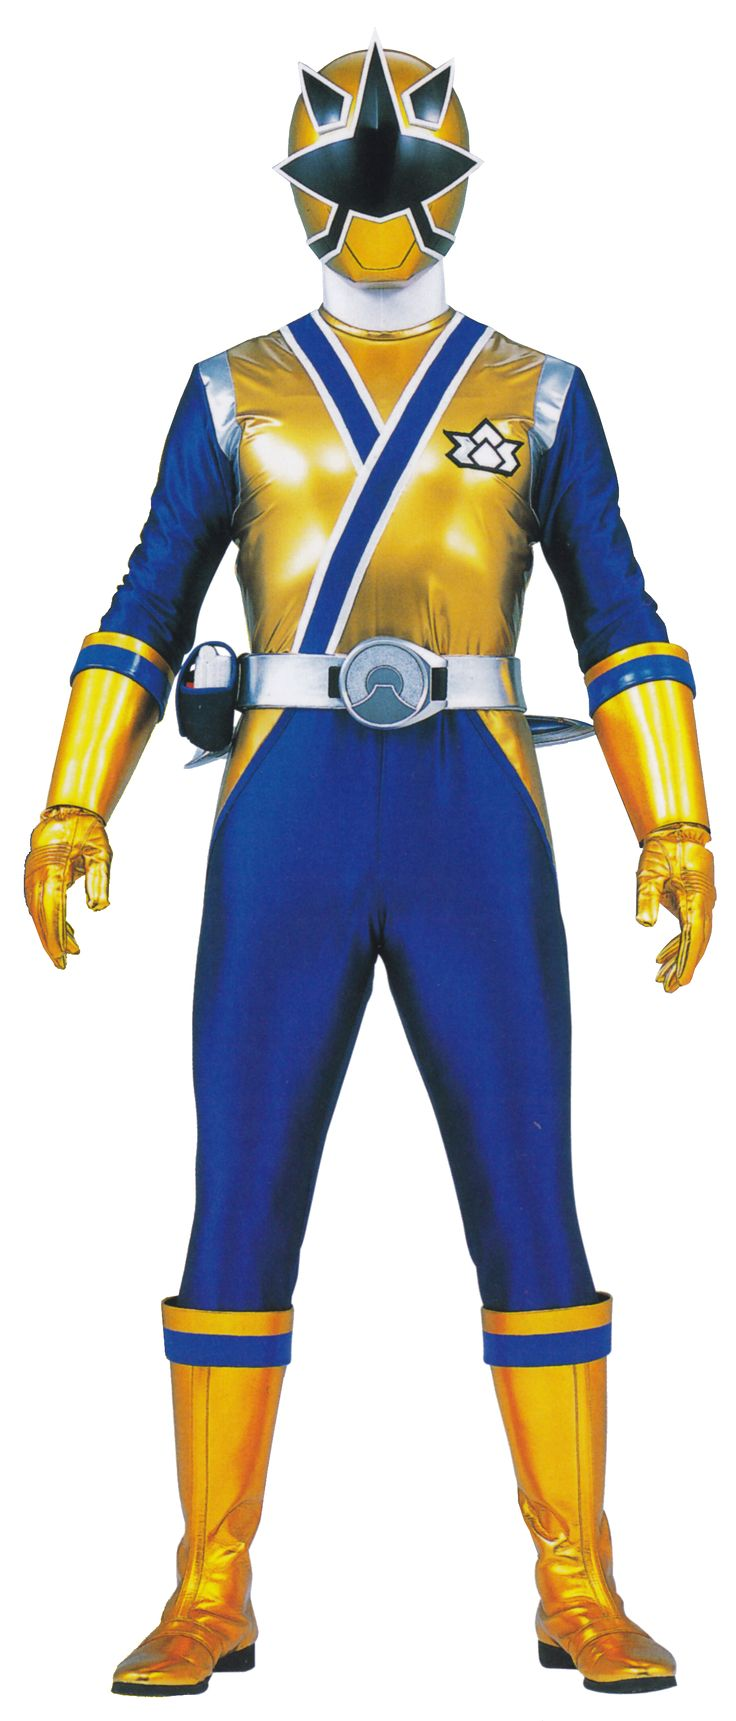 His helmet is pushed down and the Super Silver Spear changes to Anchor Mode. Description from powerrangers.wikia.com. I searched for this on bing.com/images